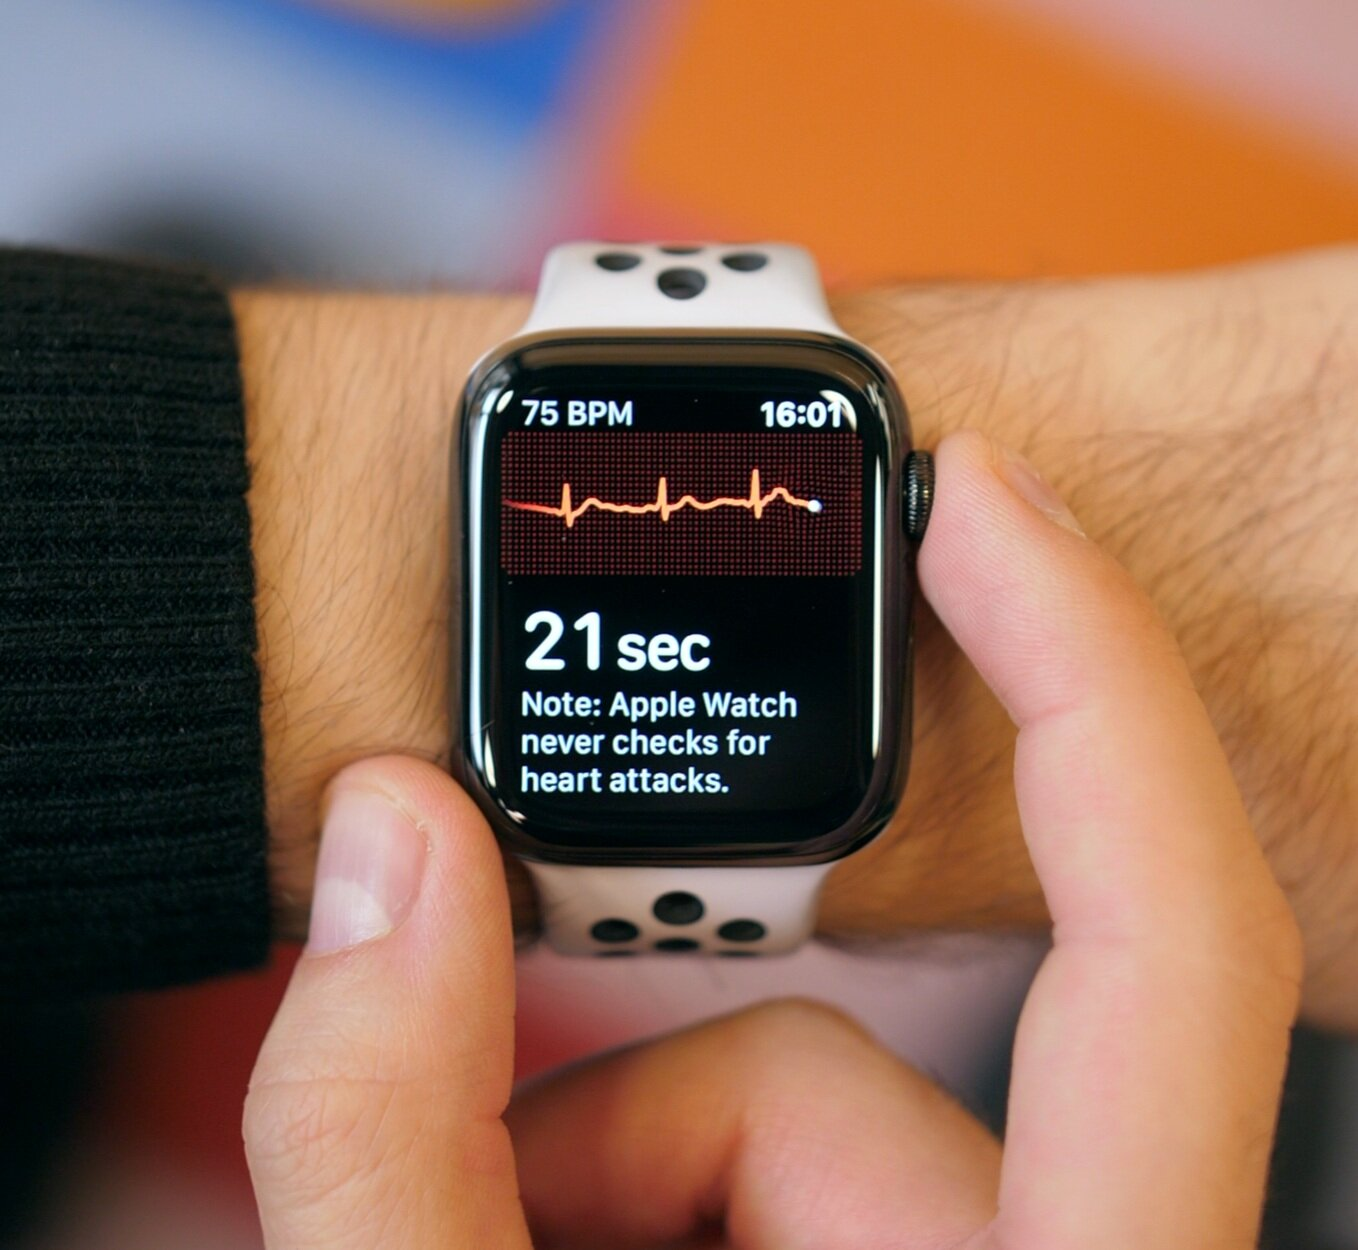 The 2nd gen Heart Rate monitor measures your heart rate constantly, but you can check it manually.